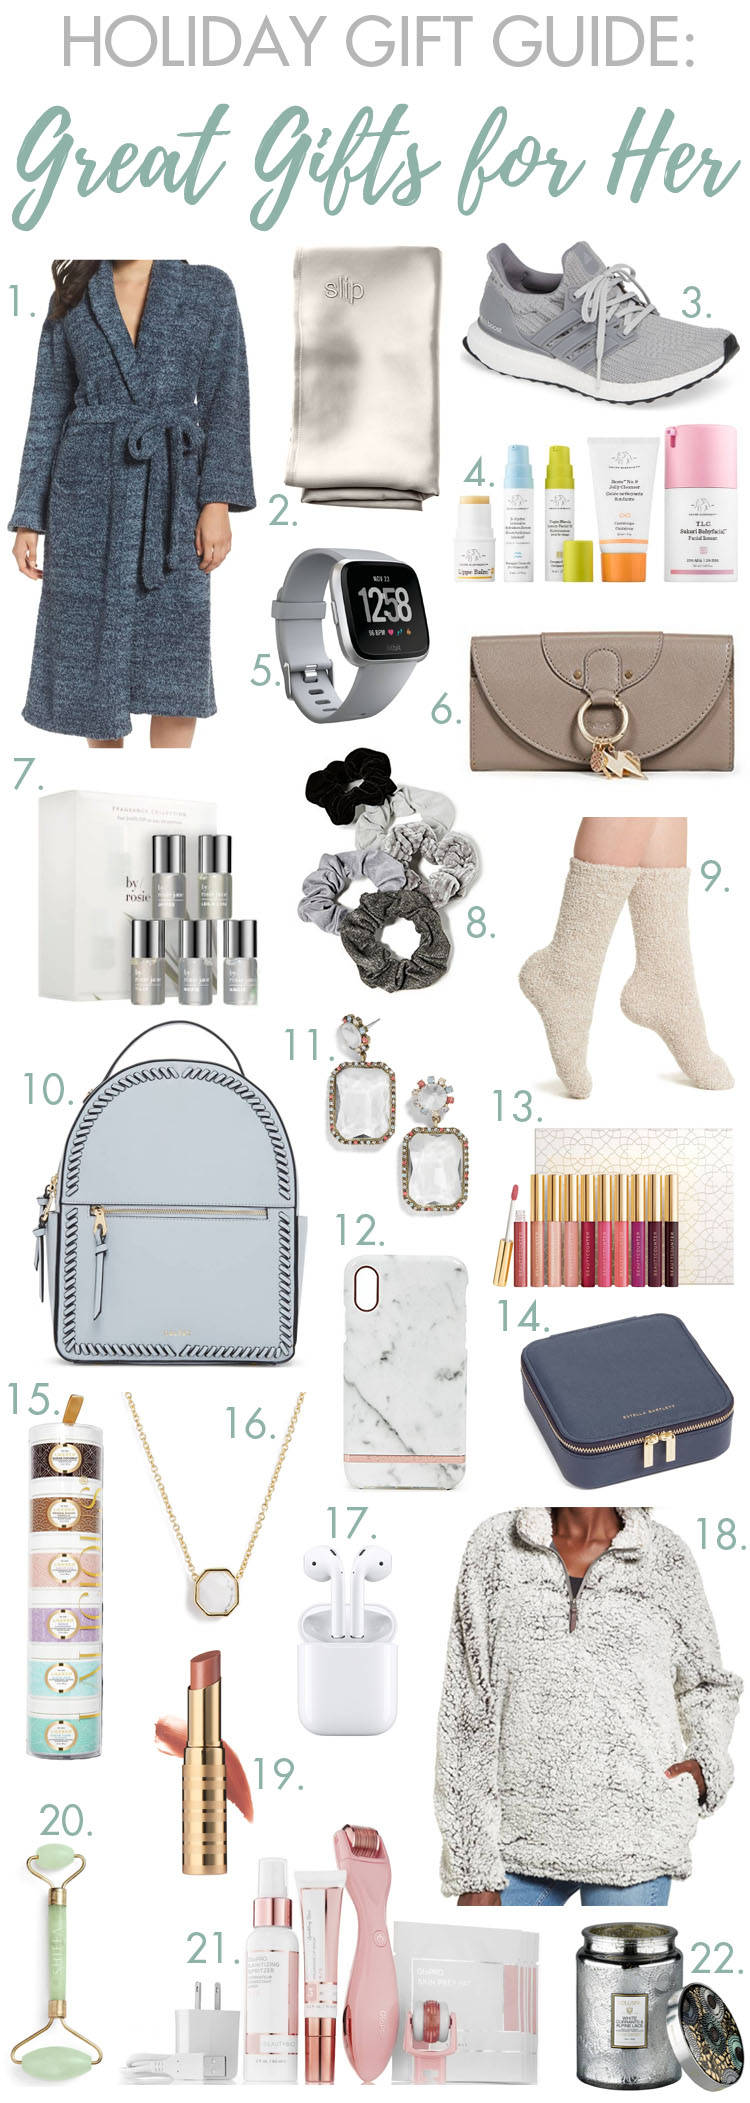 From $15 to $250, we have rounded up the best holiday gift ideas for women! #giftguide